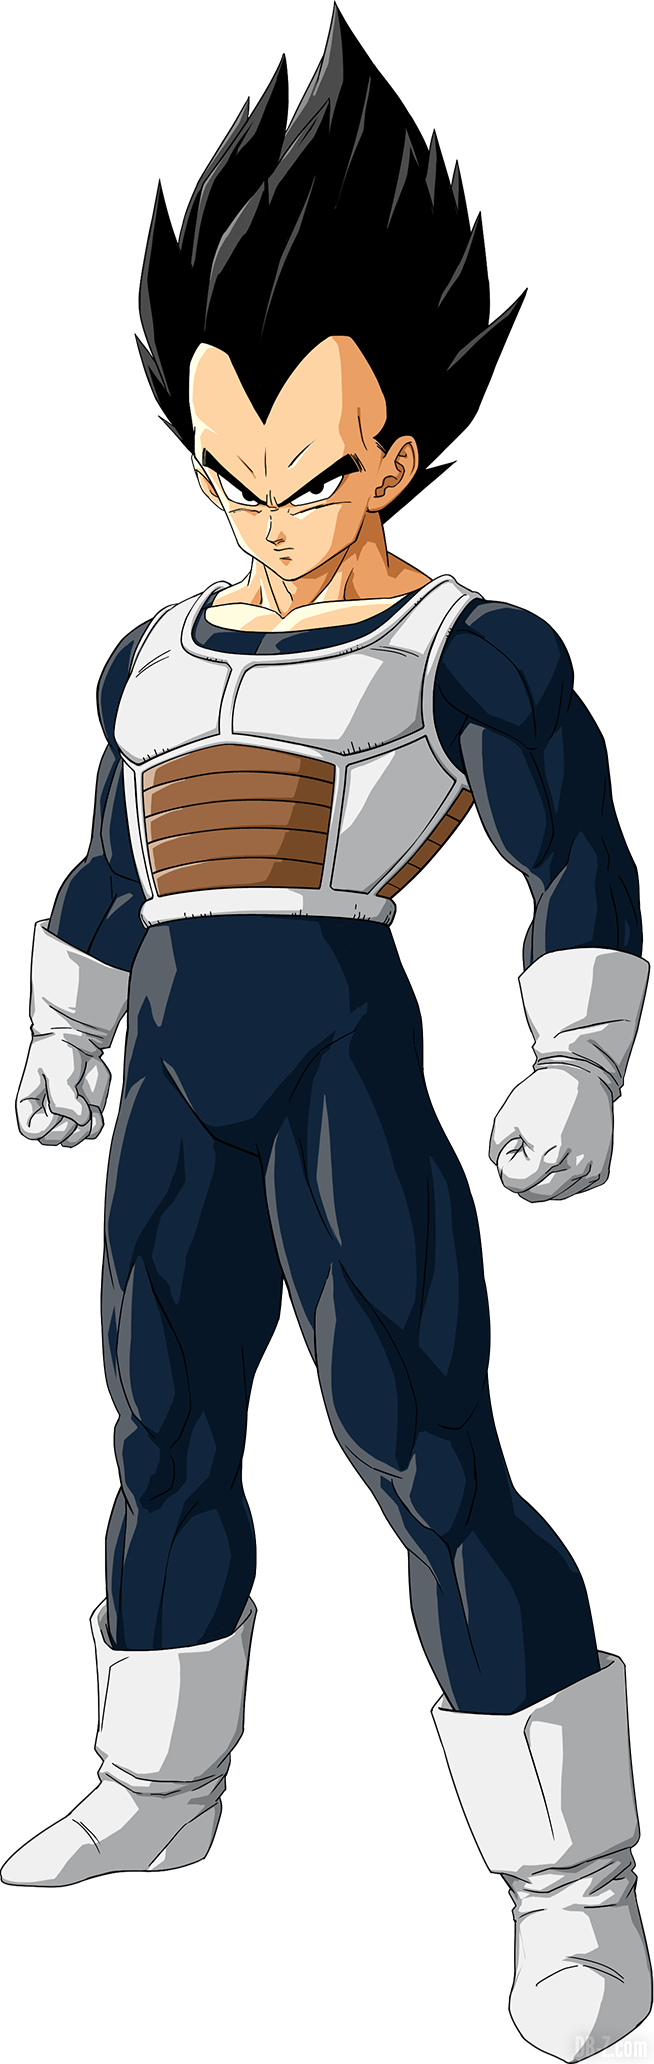 Vegeta (Dragon Ball Z Kakarot)